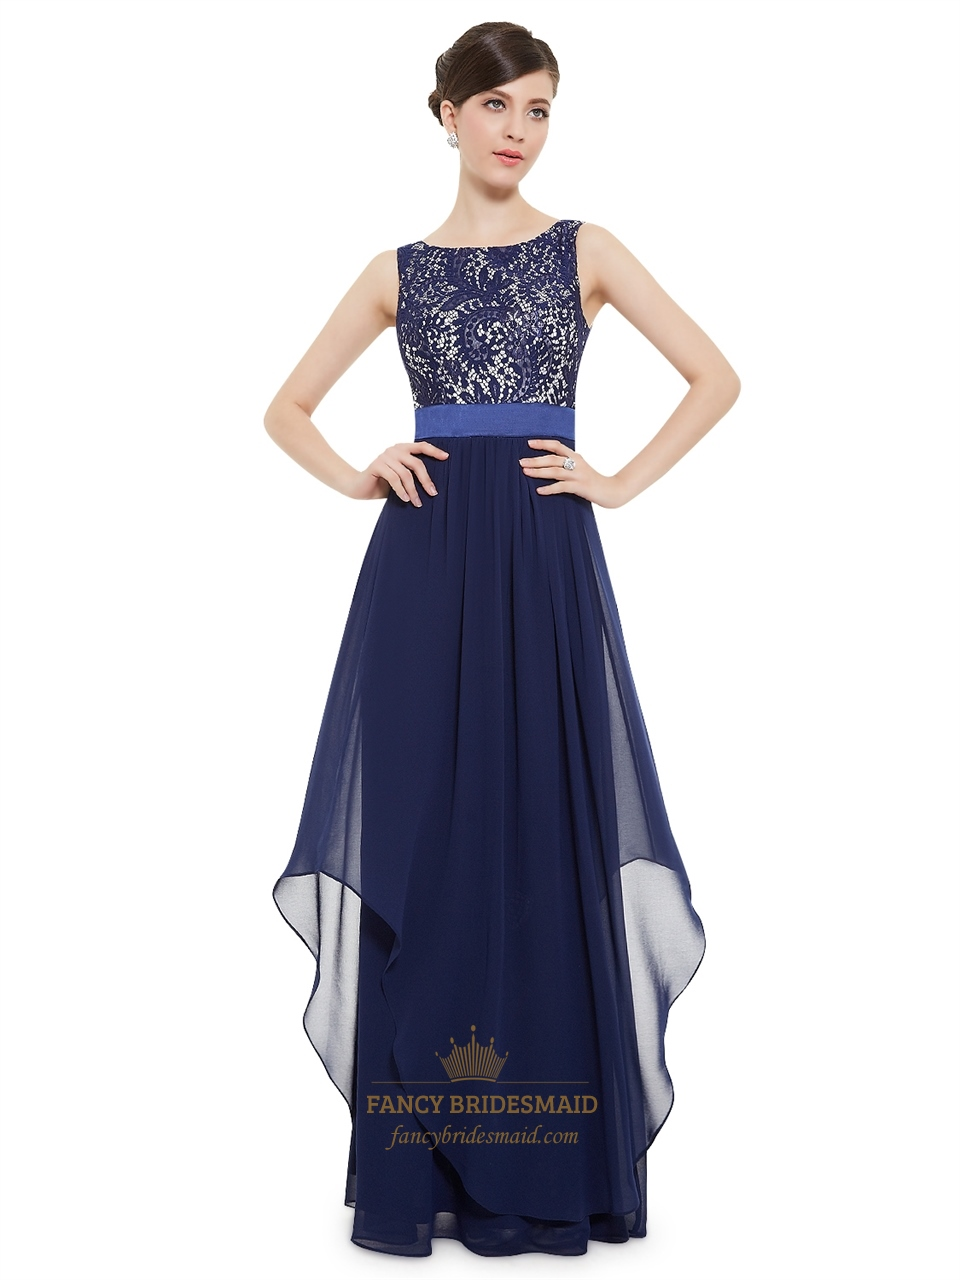 Bridesmaid Dresses Navy Blue Lace